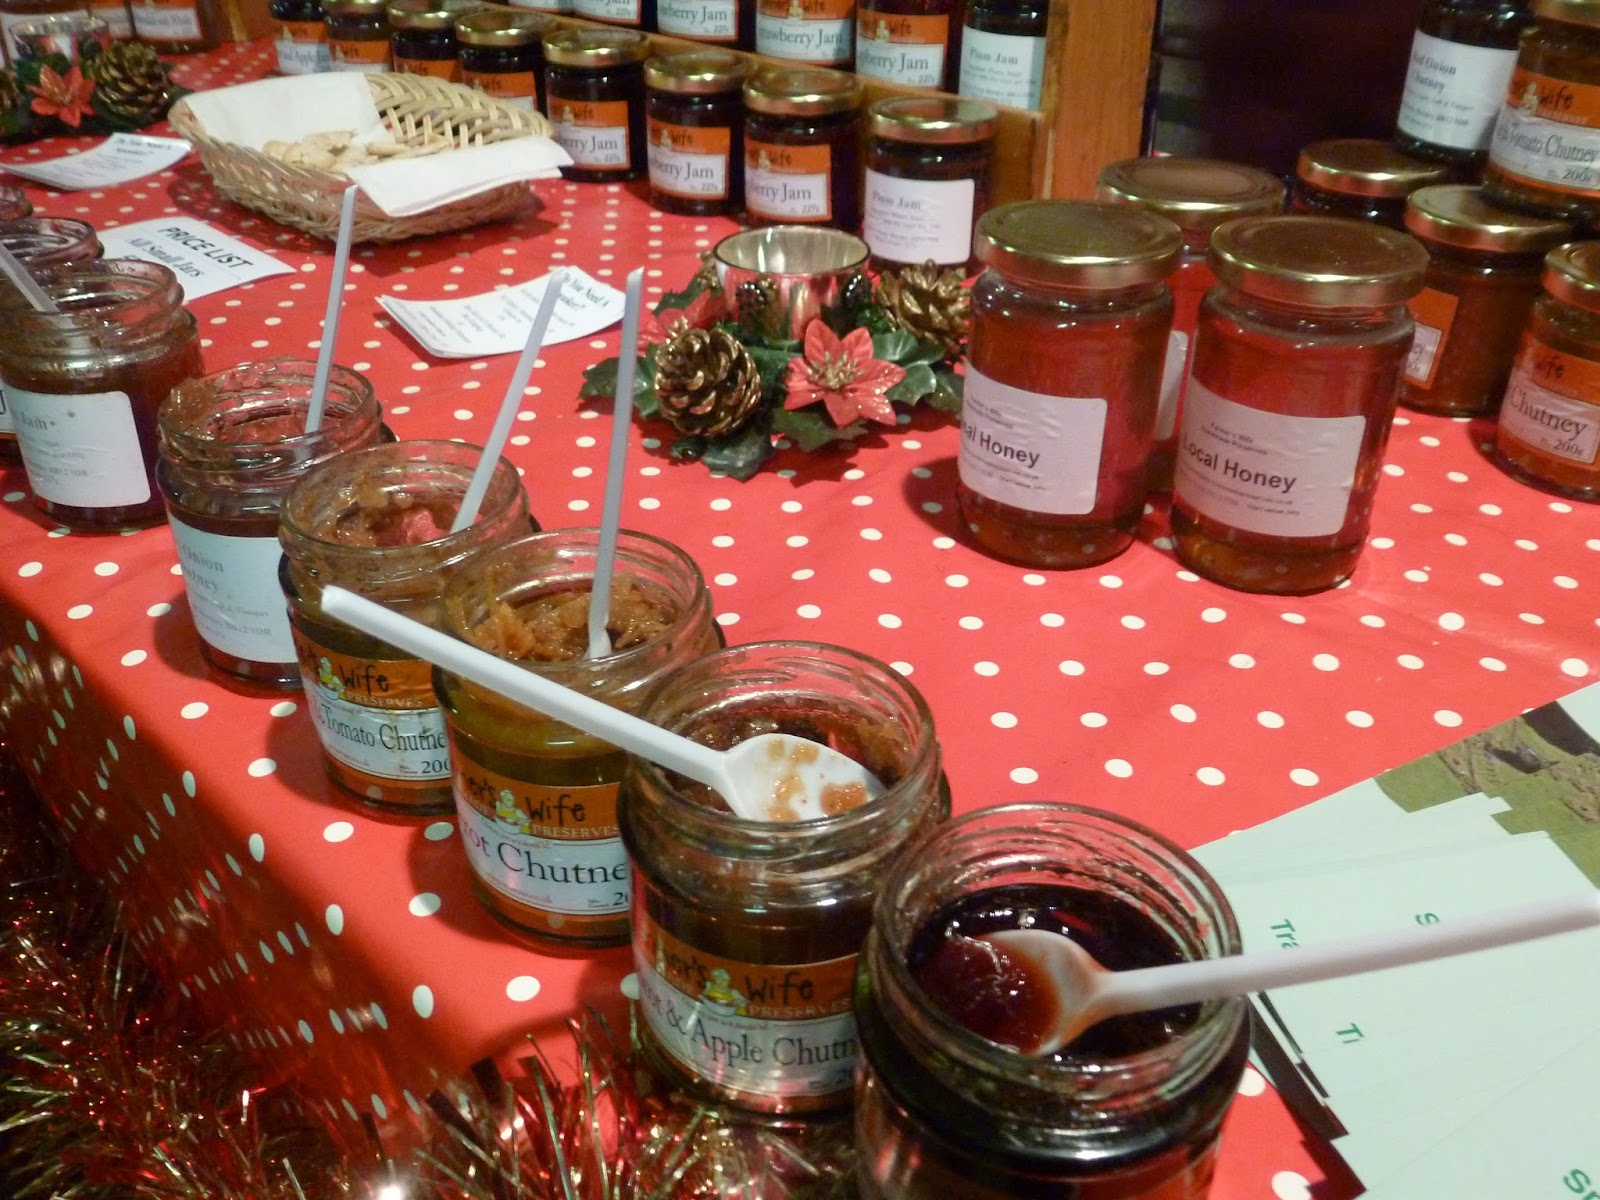 Farmers market stall jam and chutney